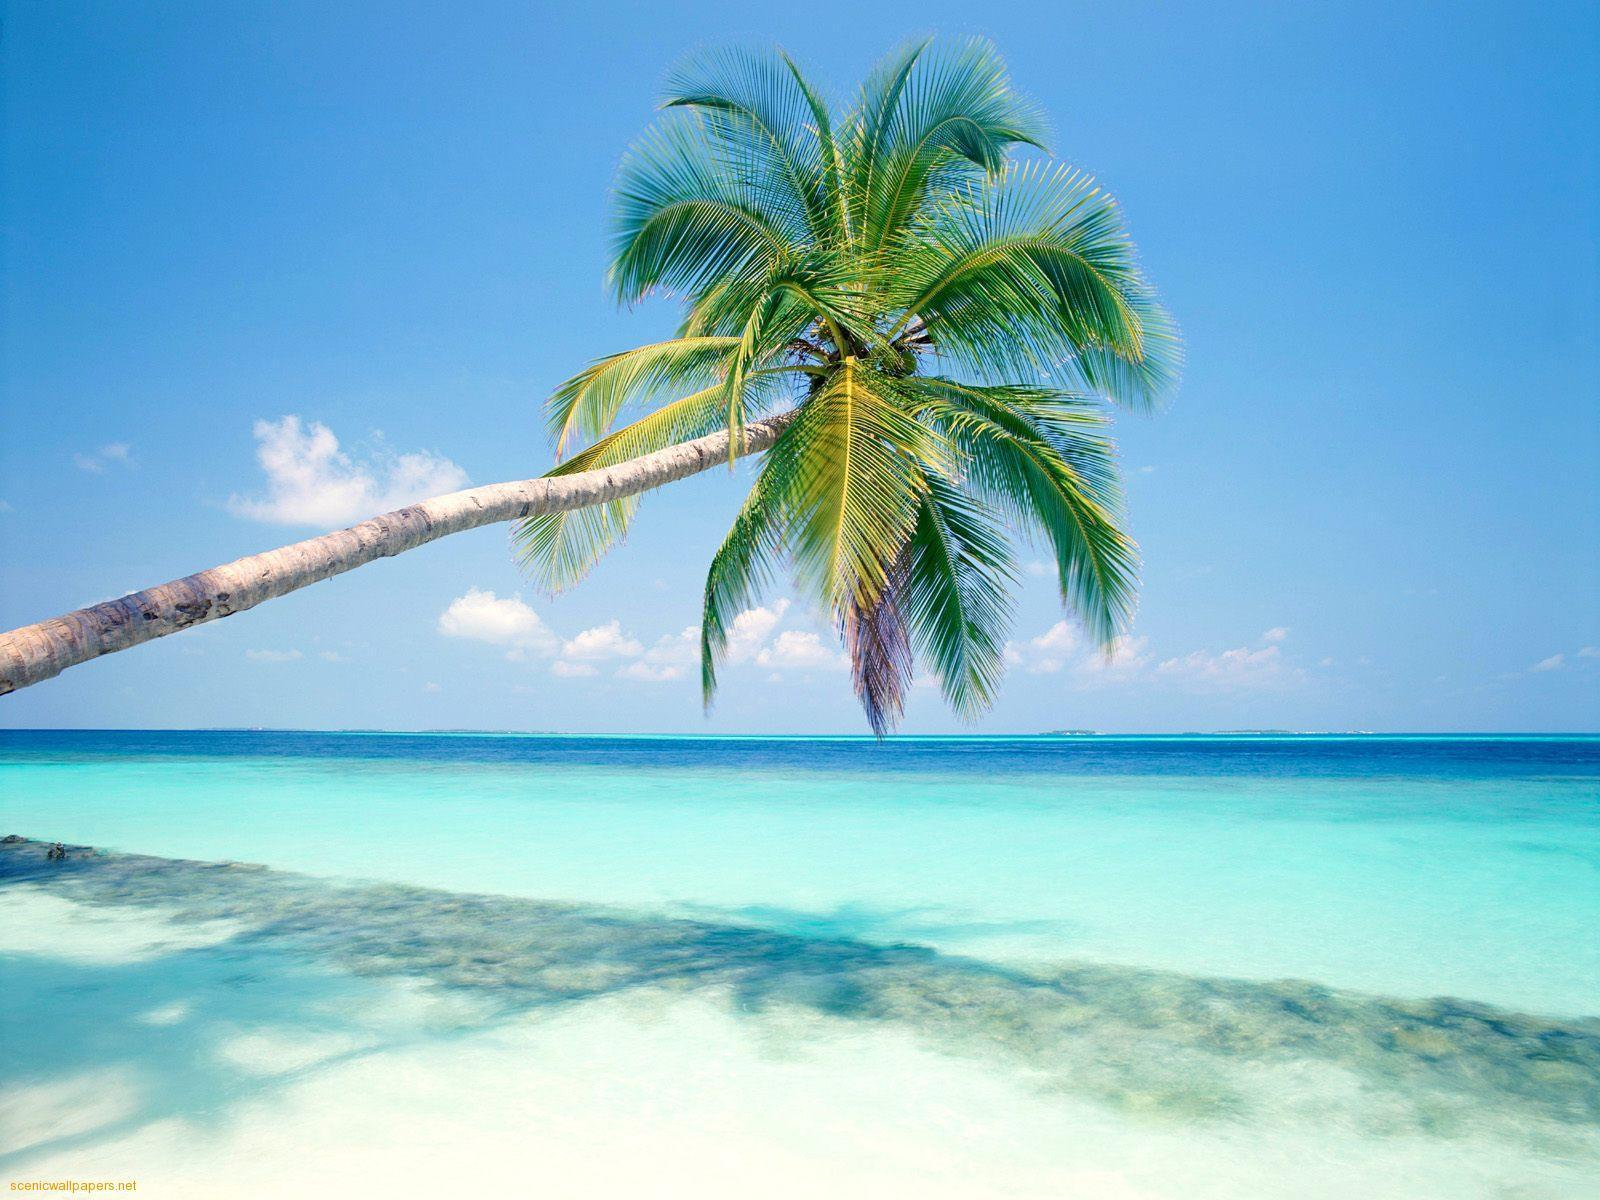 Exotic Island Wallpaper | HD Wallpapers Zon